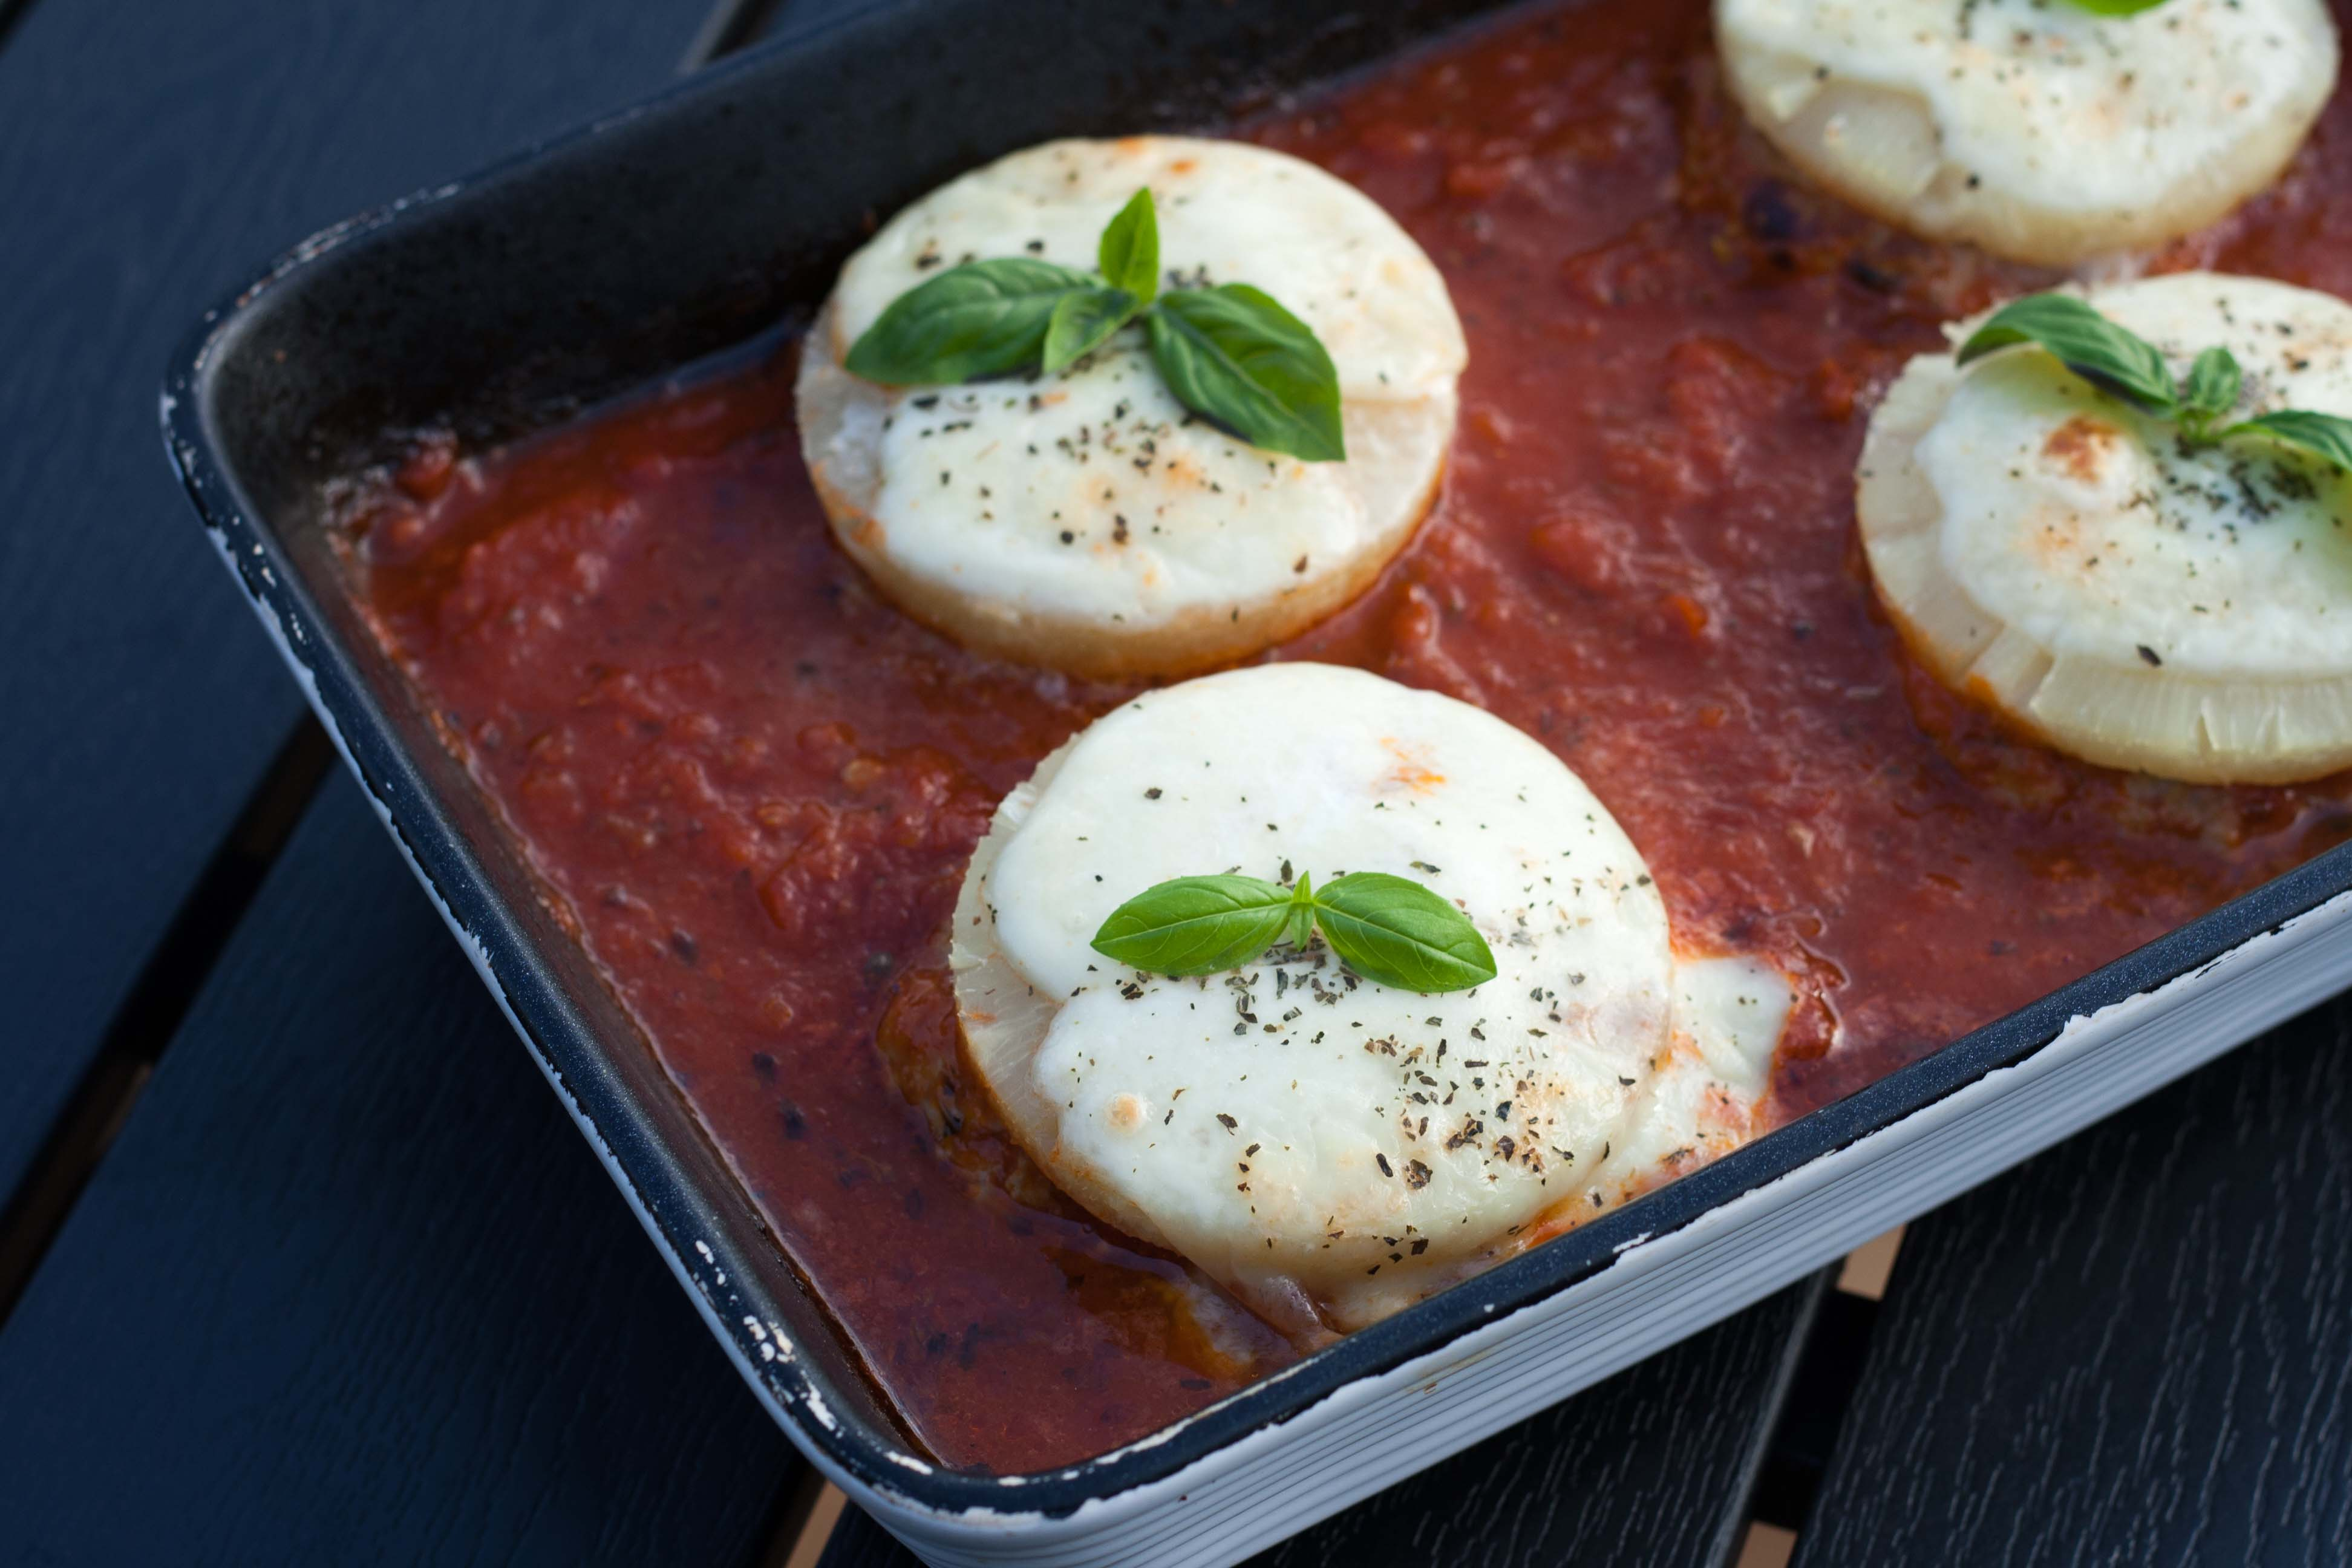 Hawaii Pork Patties in delicious tomato sauce with mozzarella and basil 4